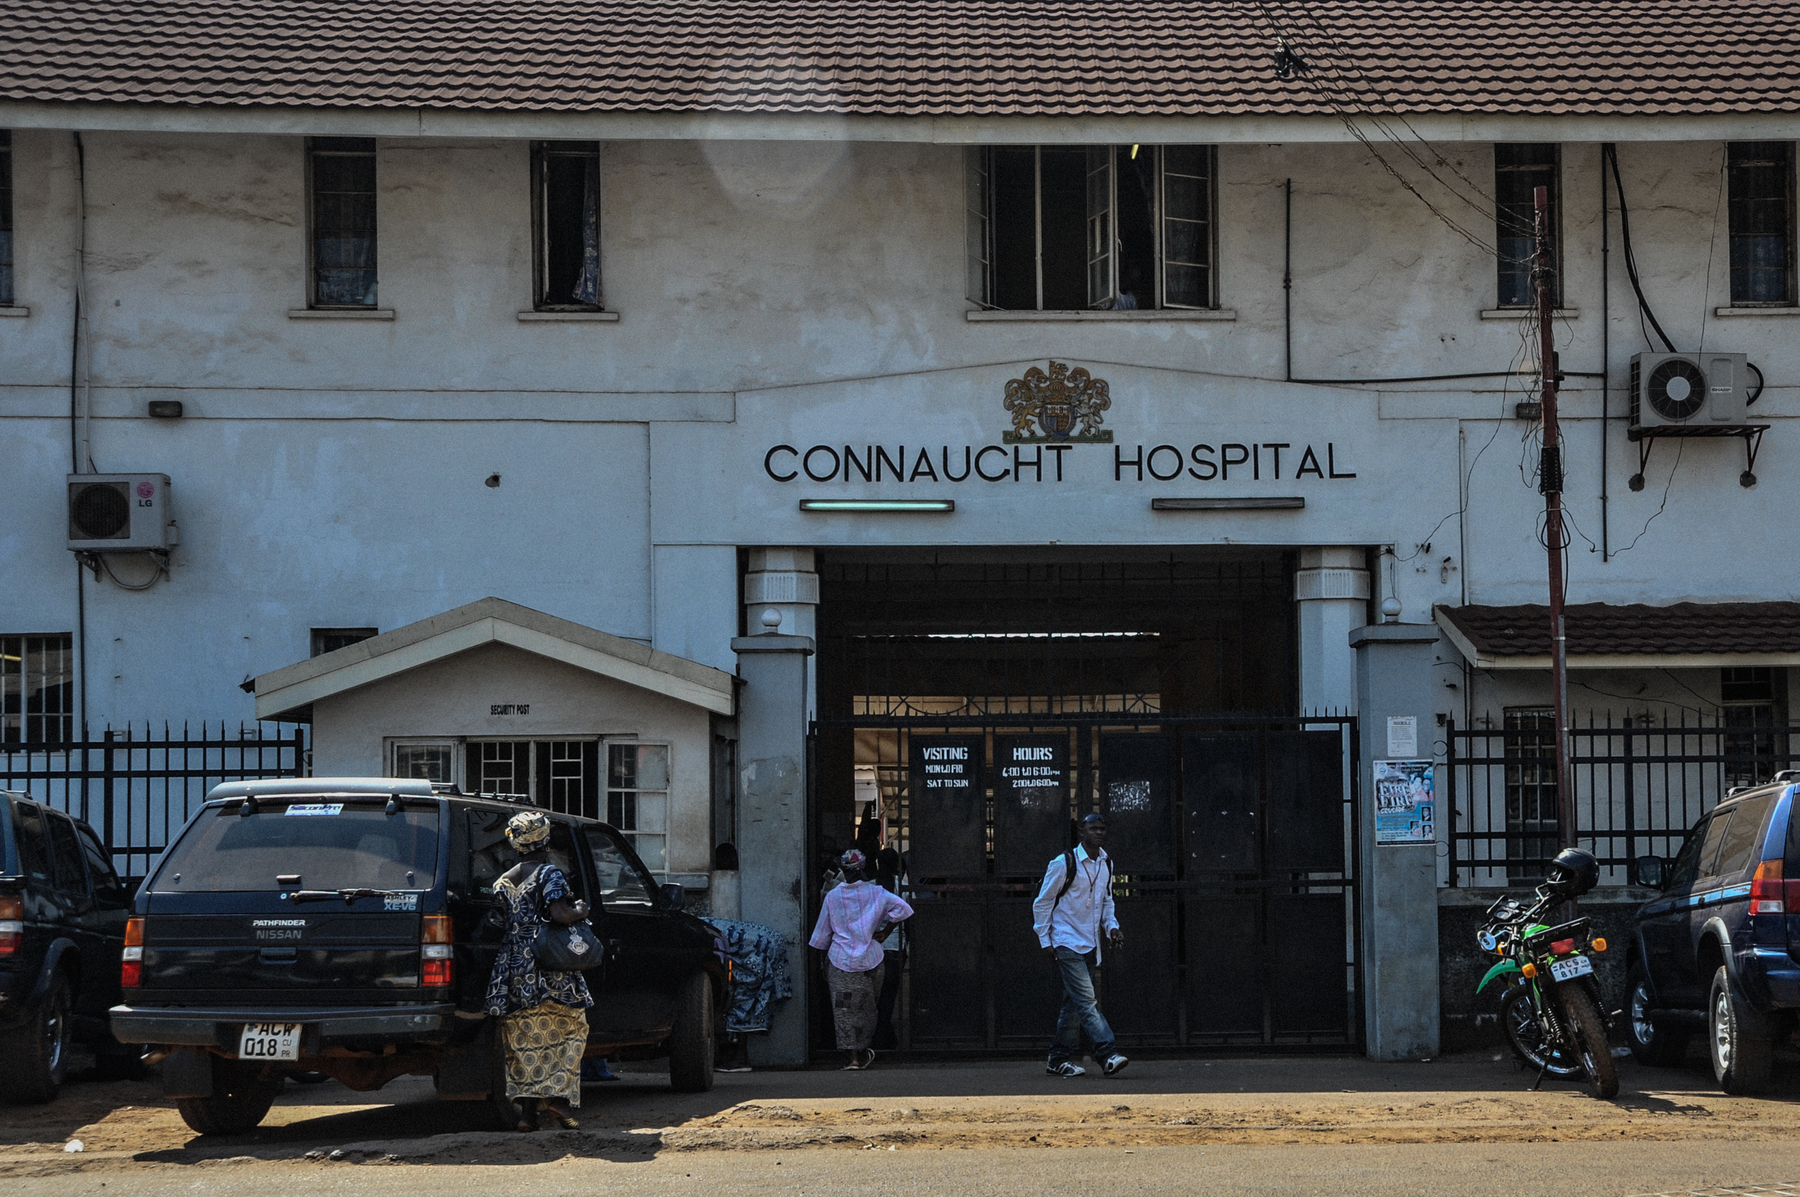 Connaught Hospital is the main referral hospital in Sierra Leone. Surgeons OverSeas (SOS) has been helping to improve surgical care since February 2008 with salary support for surgical health care workers, providing supplies and equipment, and undertaking training courses in emergency and essential surgical care.